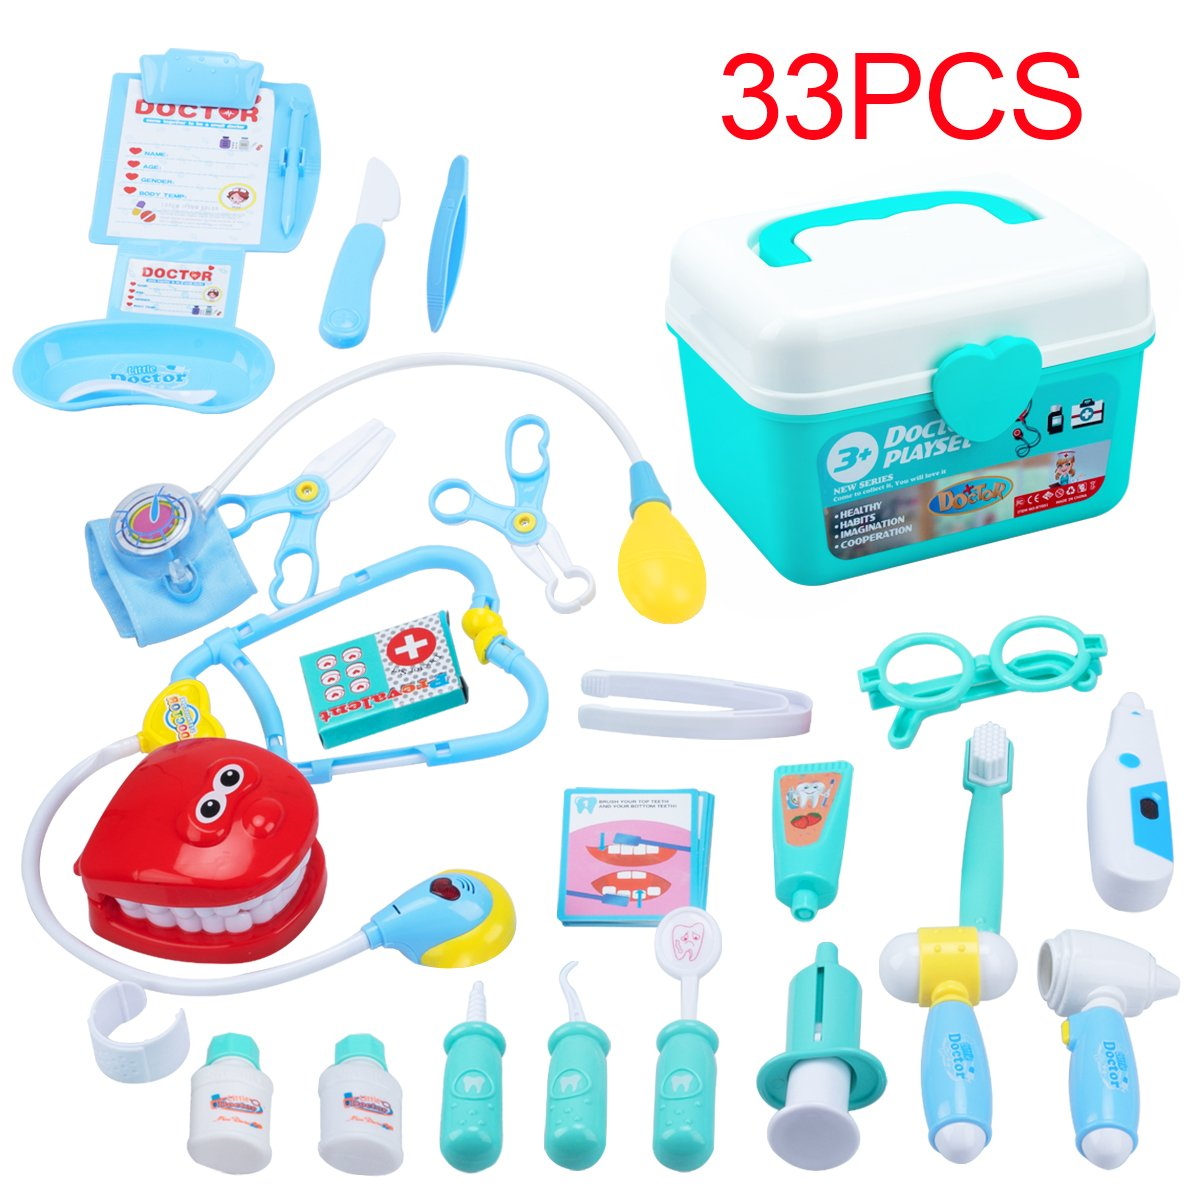 KEDA Kids Doctor Kit Pretend Play Toy Set Durable Dentist Medical Kit 33 Pieces Electronic Stethoscope Gift for Boys and Girls. by KEDA